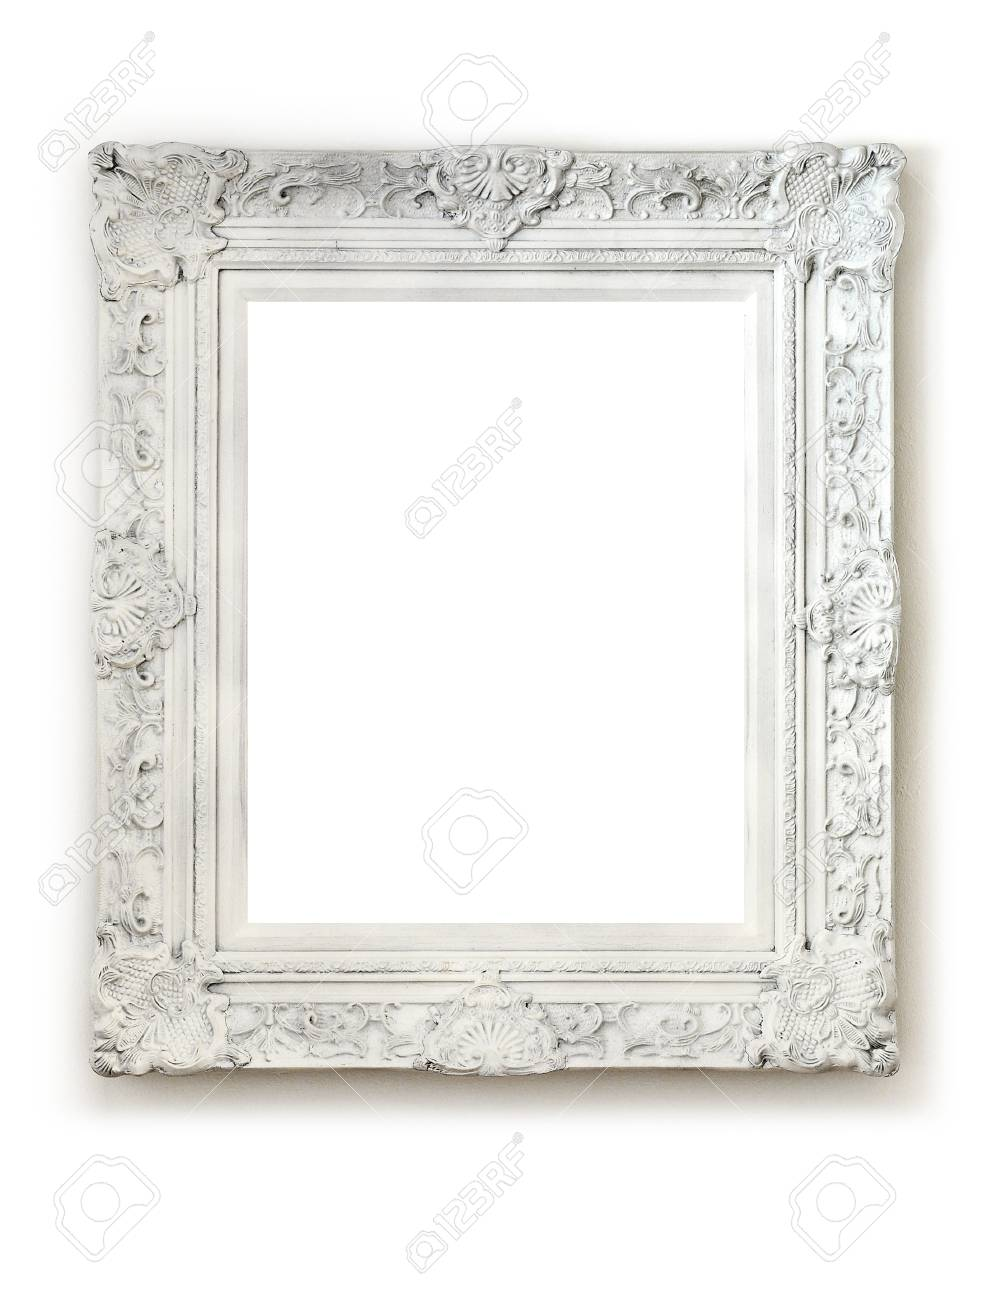 Vintage Empty Frame On White Wall Stock Photo, Picture And Royalty ...